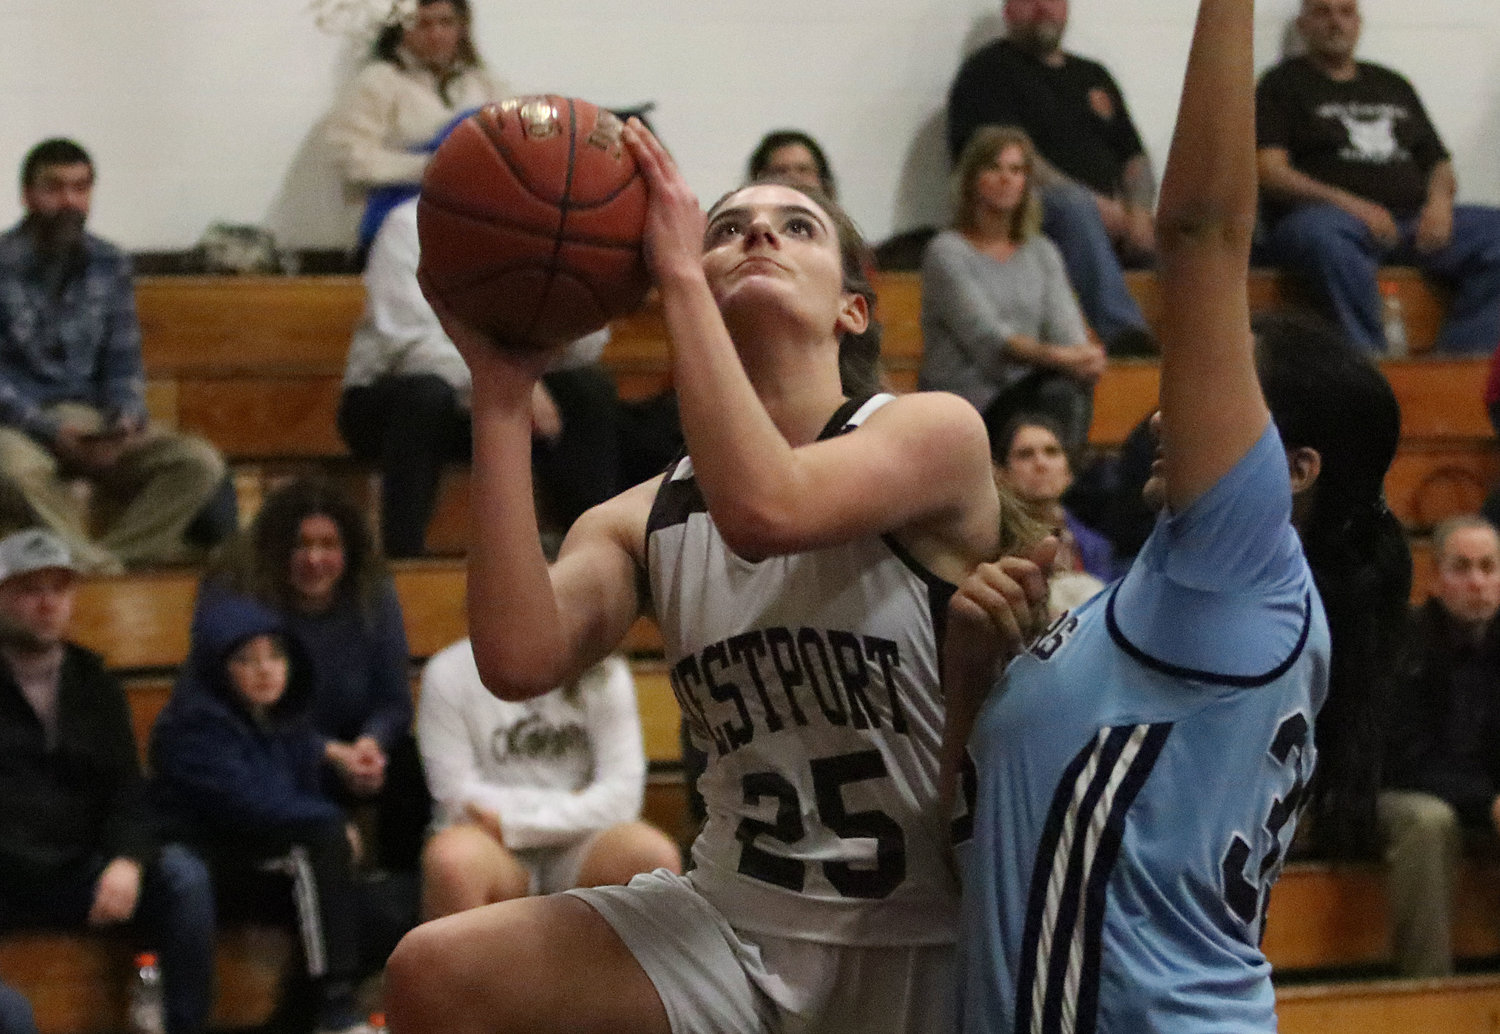 Sophomore forward Lily Pichette drives the lane for a layup.